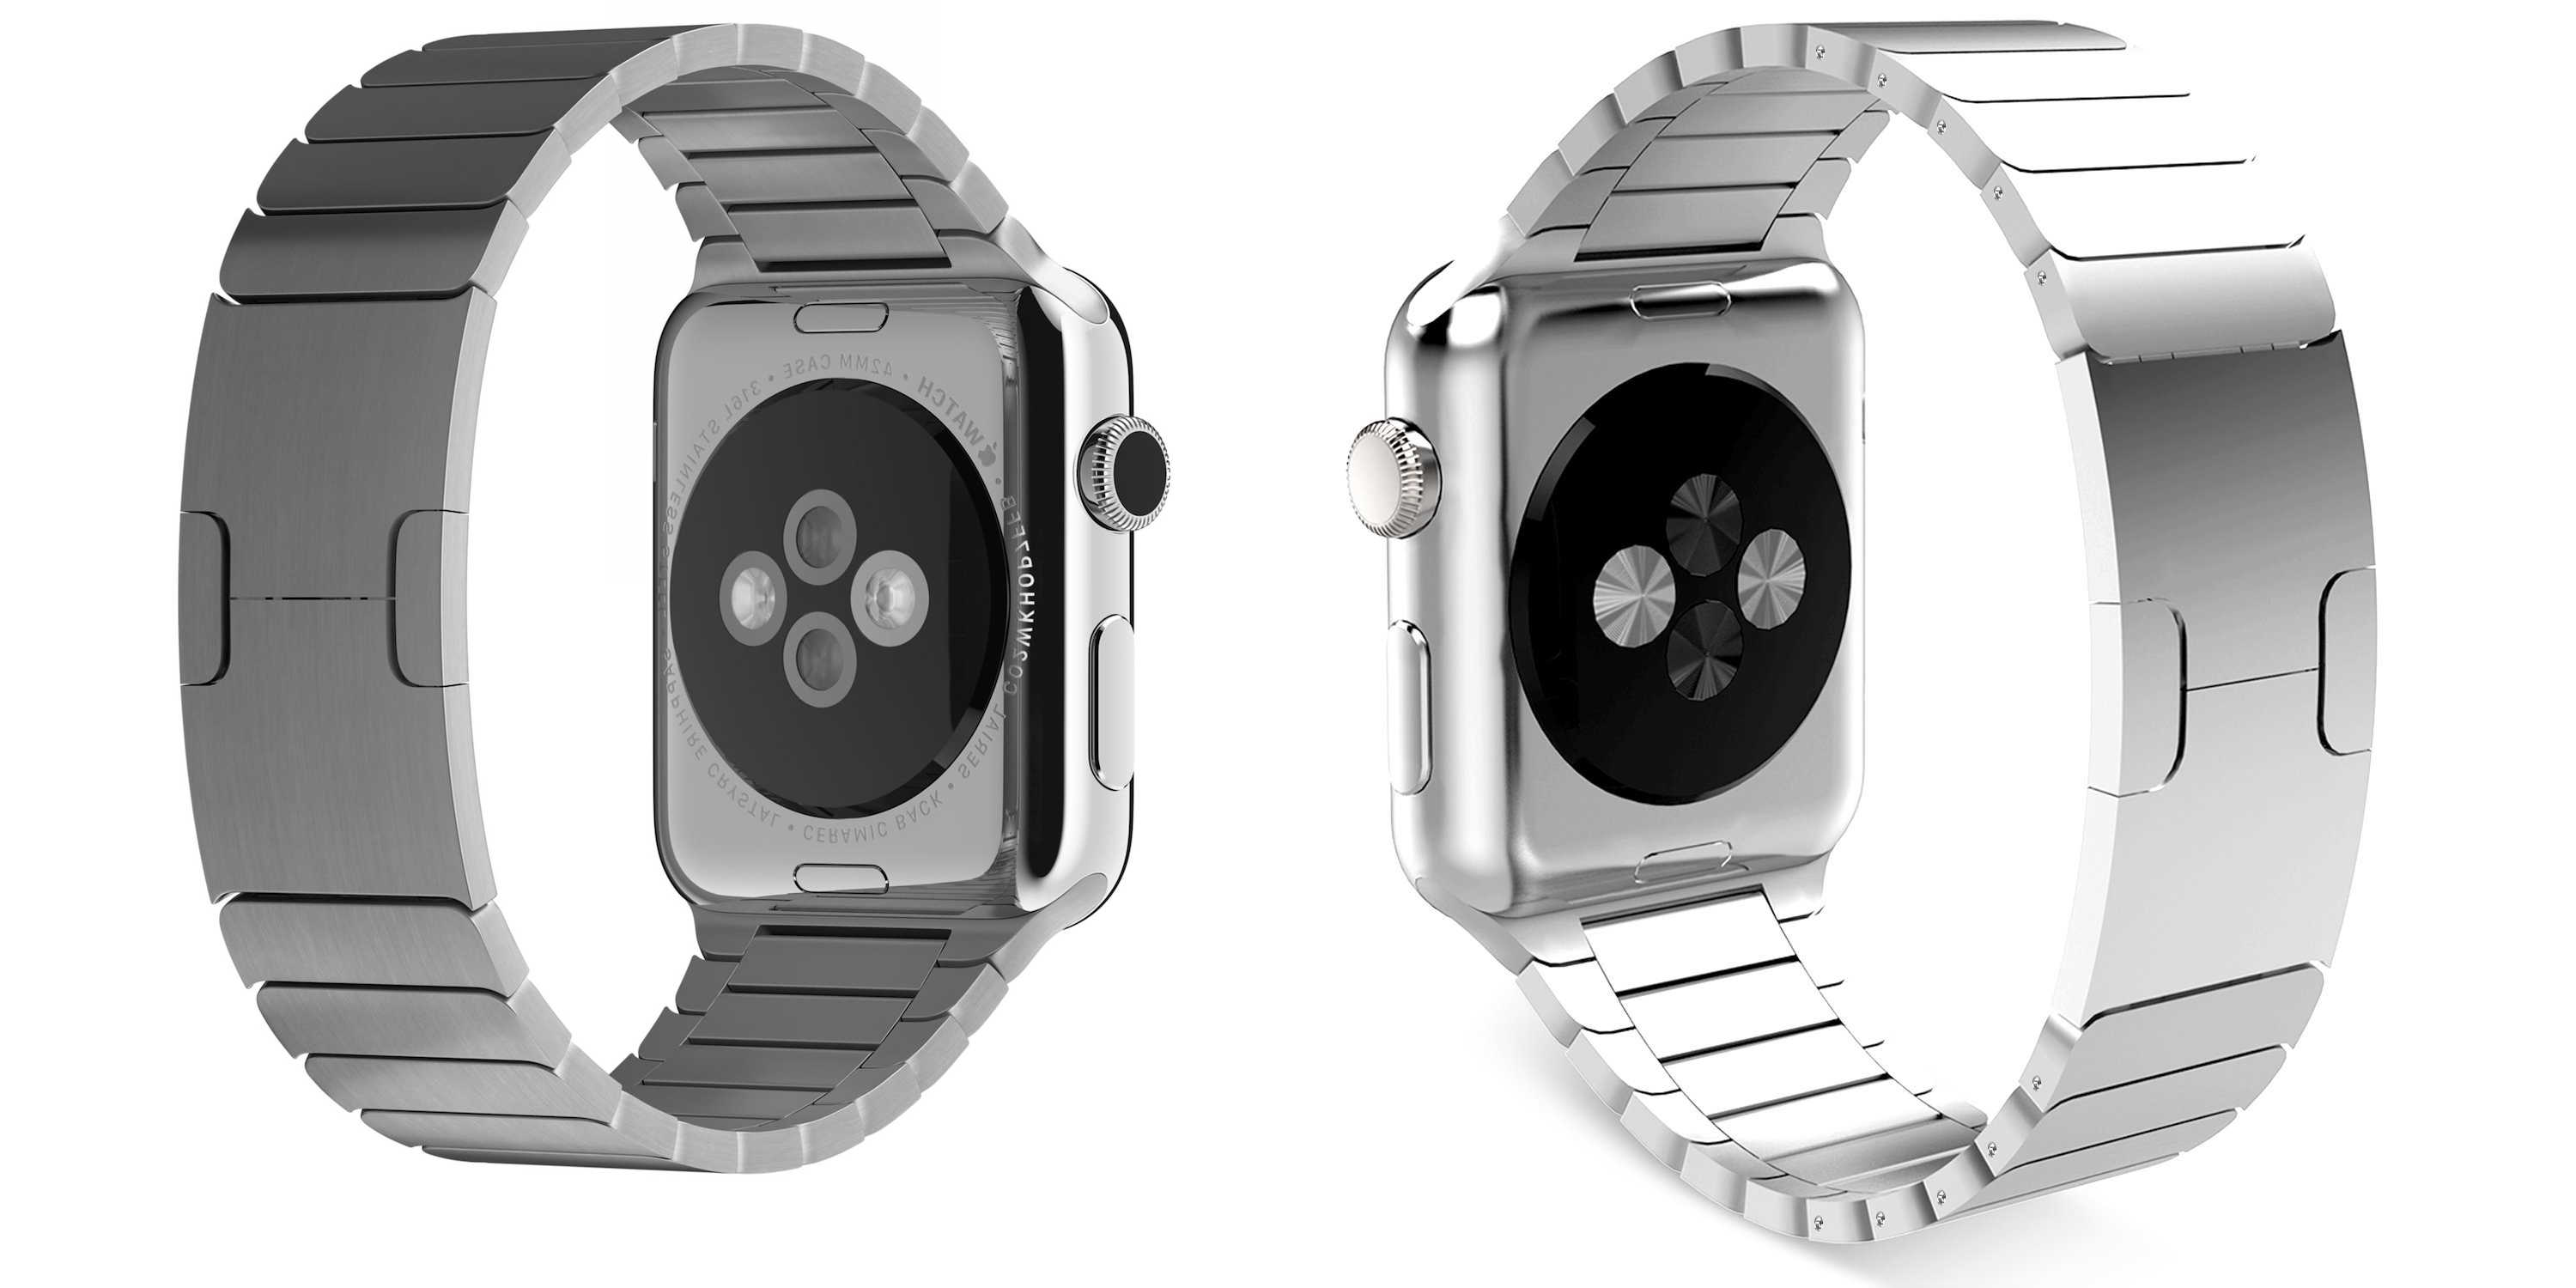 Spot the difference. On the left is Apple's $450 Link Bracelet for Apple Watch. On the right, a $90 knockoff that gets 4.5 stars on Amazon.